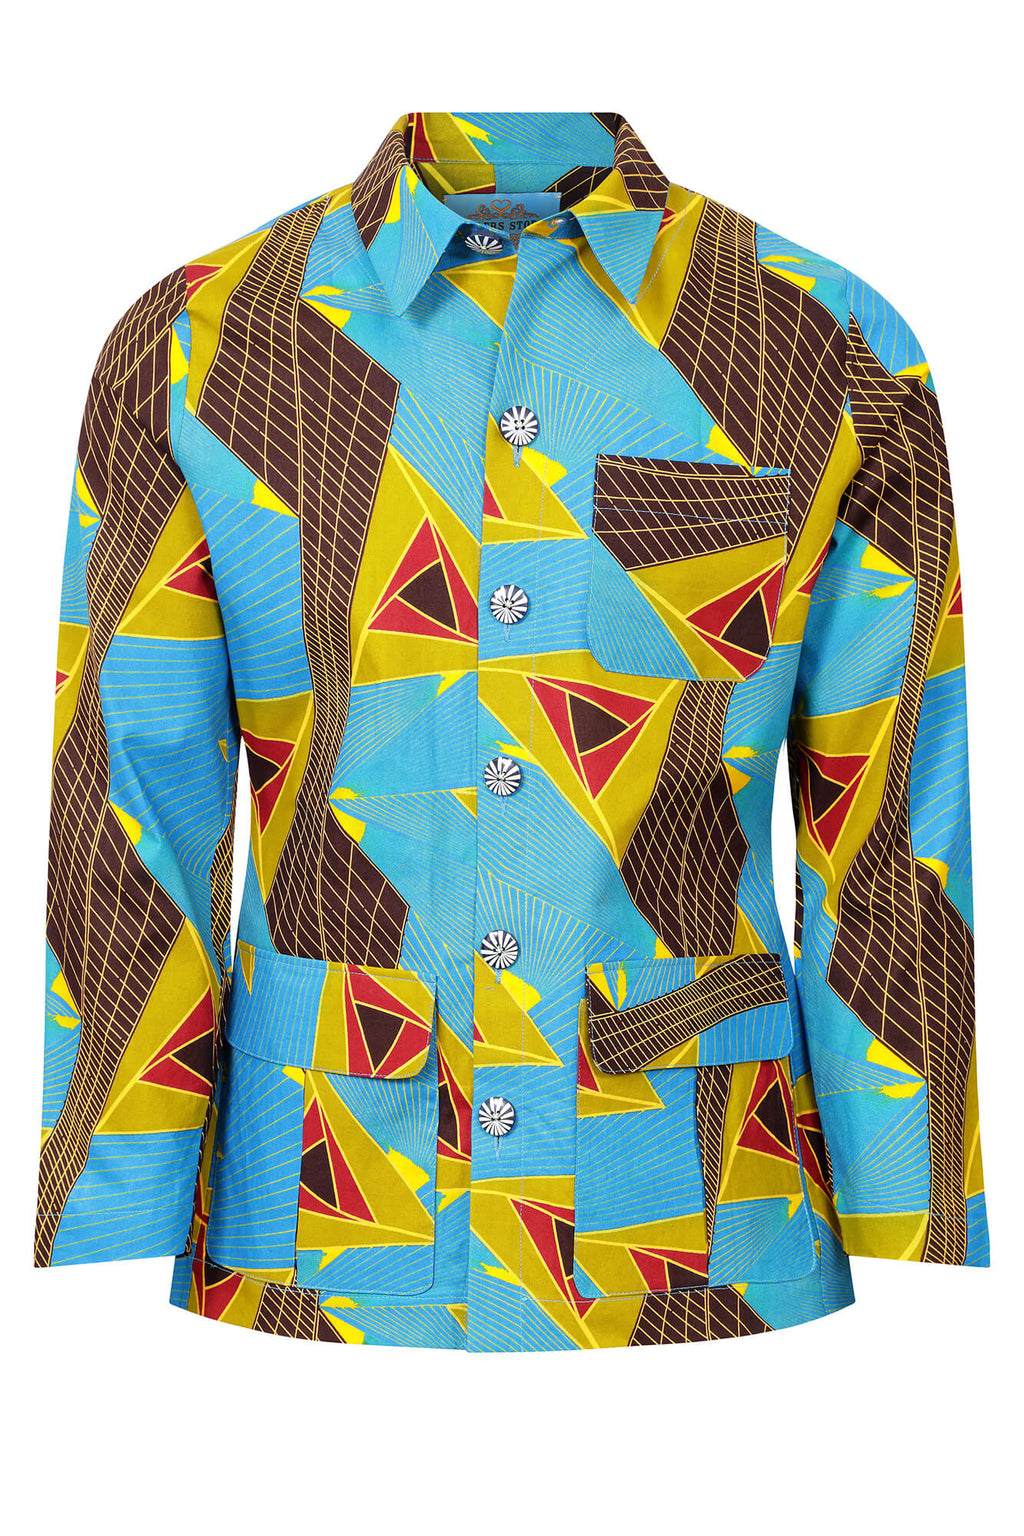 The Fela Jacket - Summer